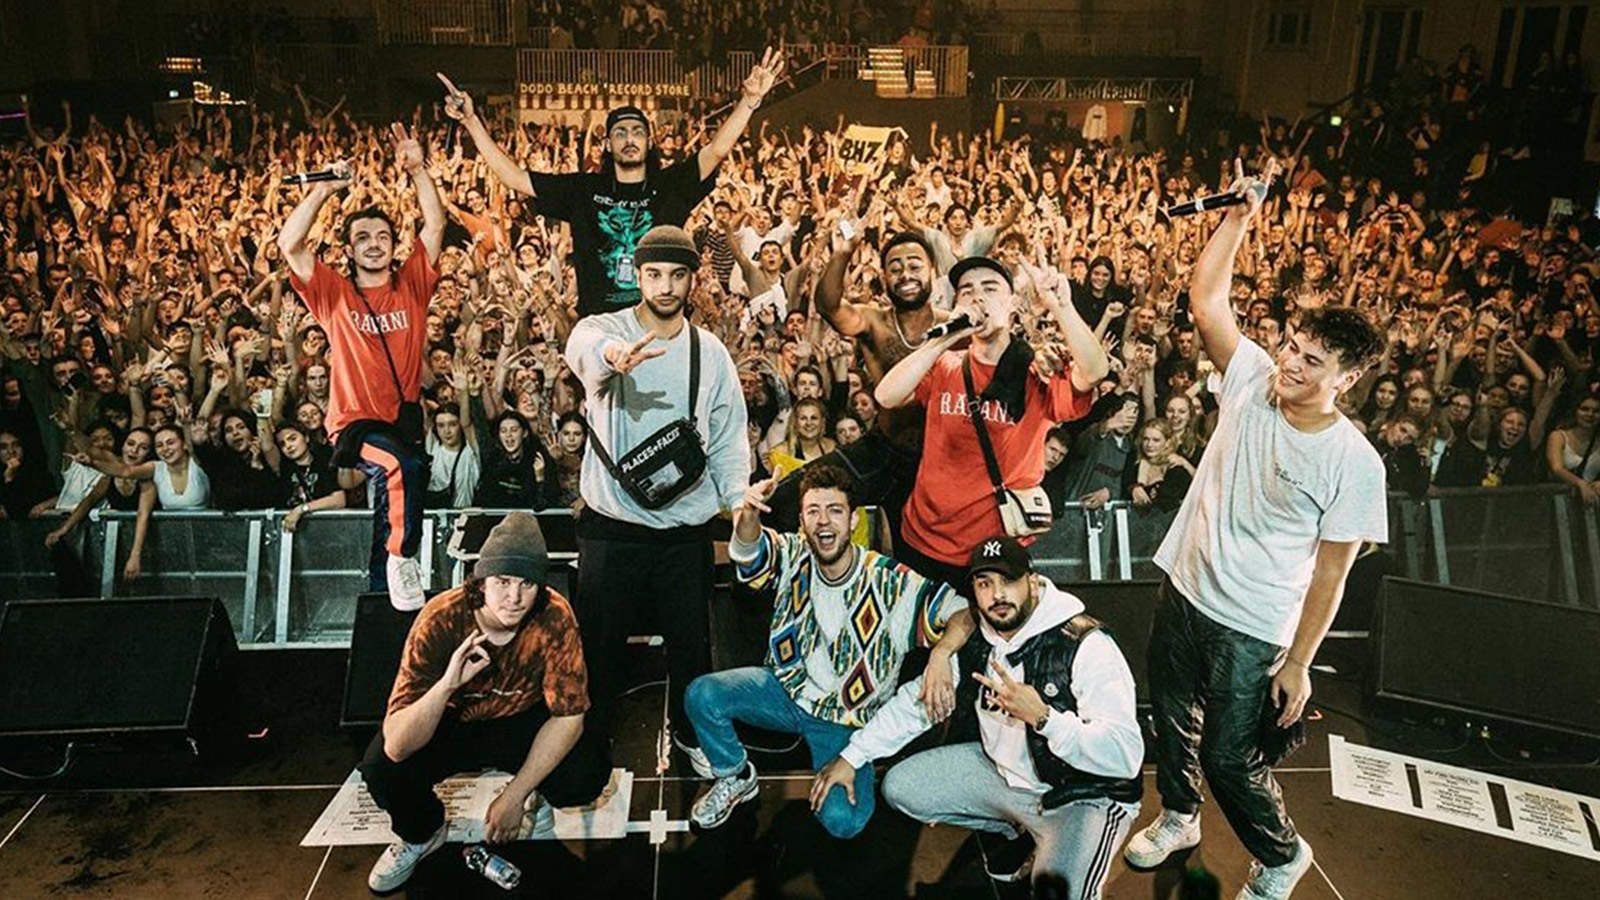 BHZ: Turnup mit der ganzen Posse – Hiphop.de Awards 2019